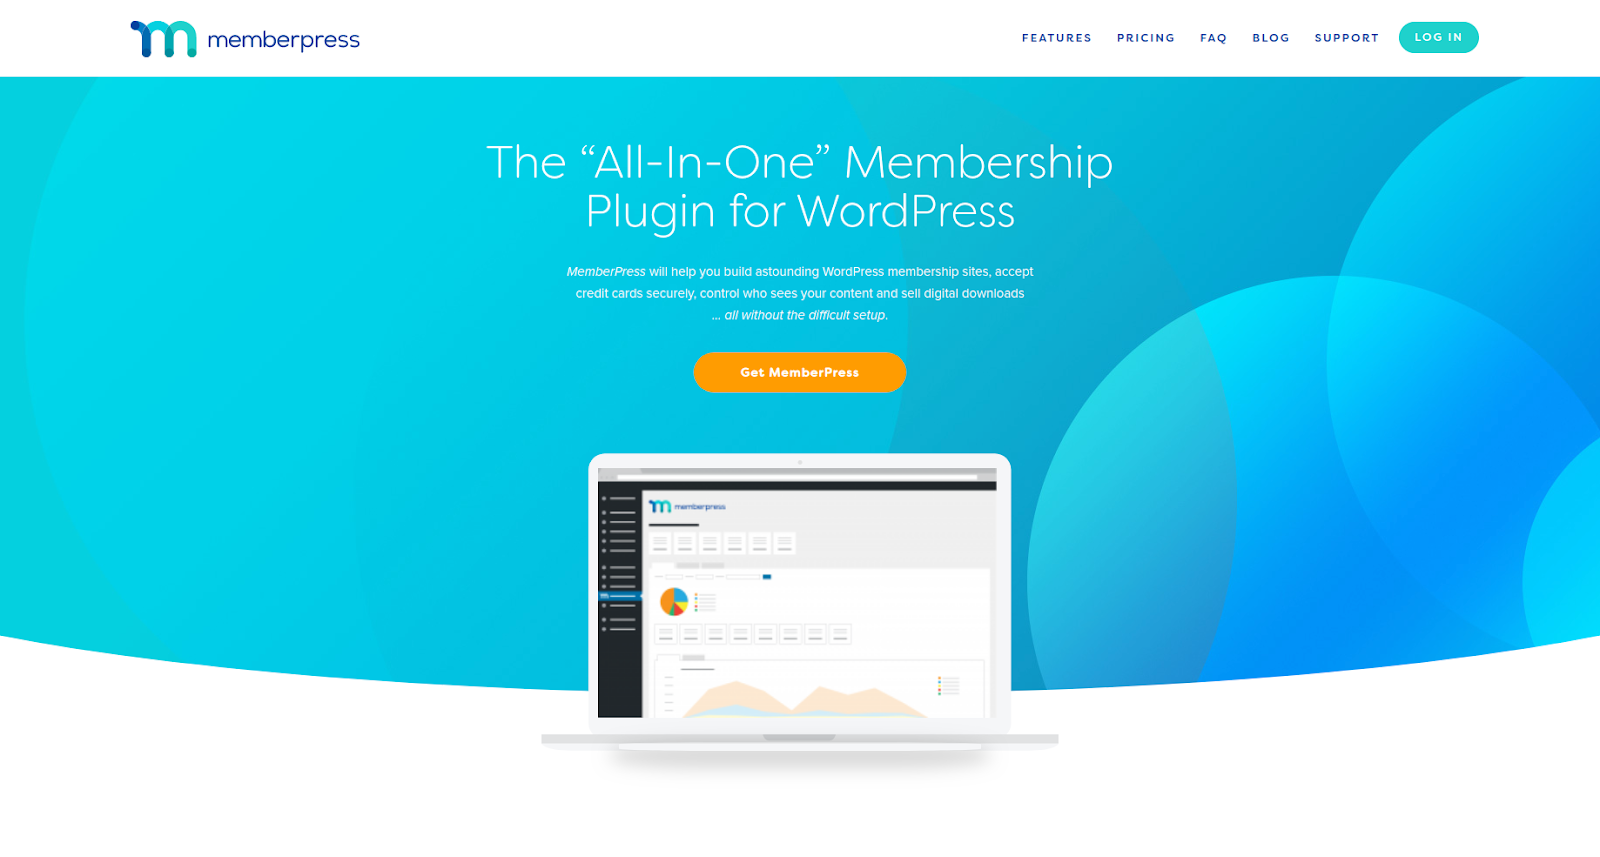 memberpress wordpress membership plugin homepage